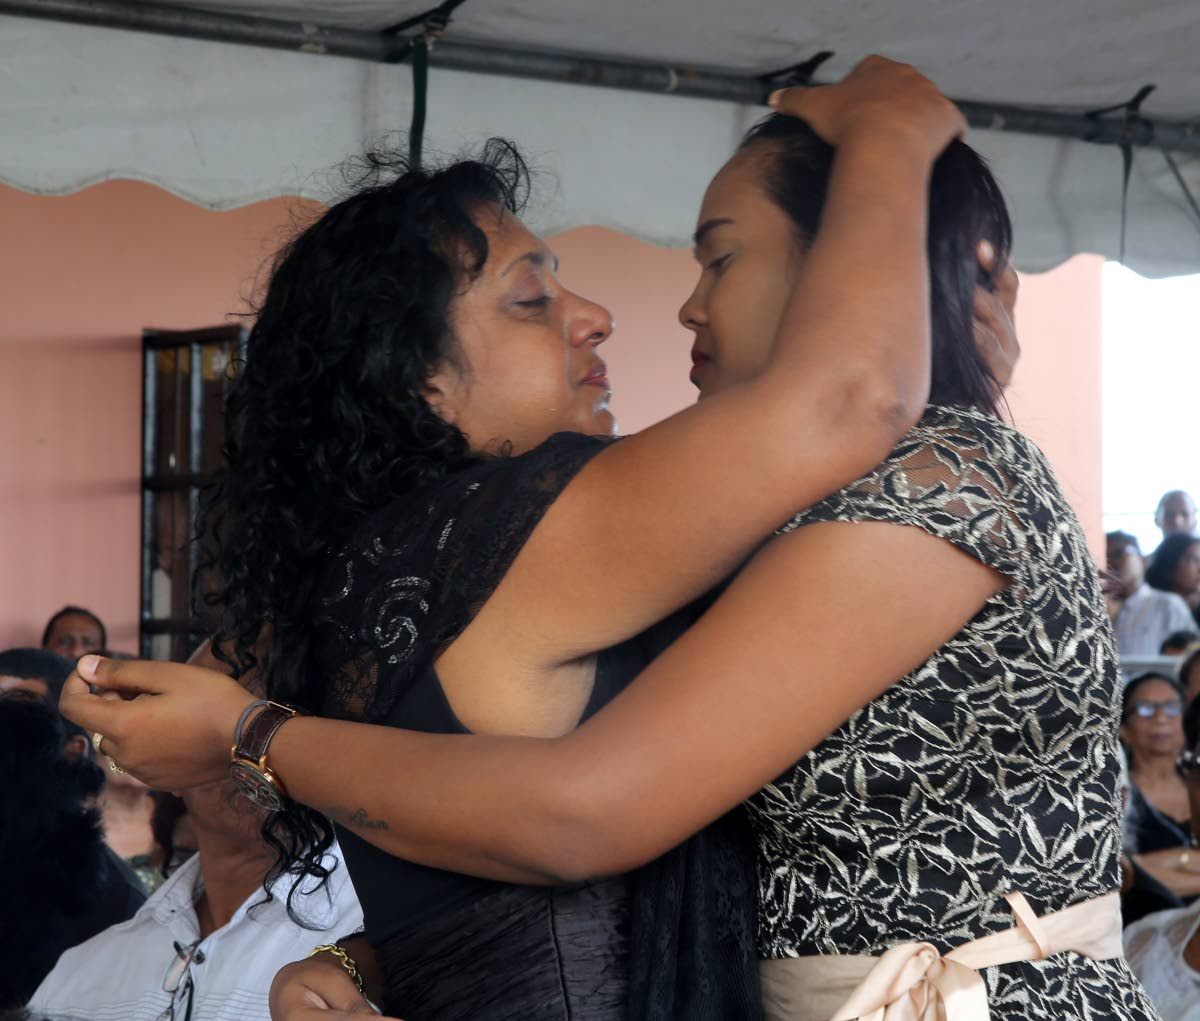 Murder victim Brandon Khan's mother Marilyn Khan (left) and his wife Krystal Chankar-Khan console each other at his funeral held at the family's Chase Village home yesterday.   PHOTO BY VASHTI SINGH